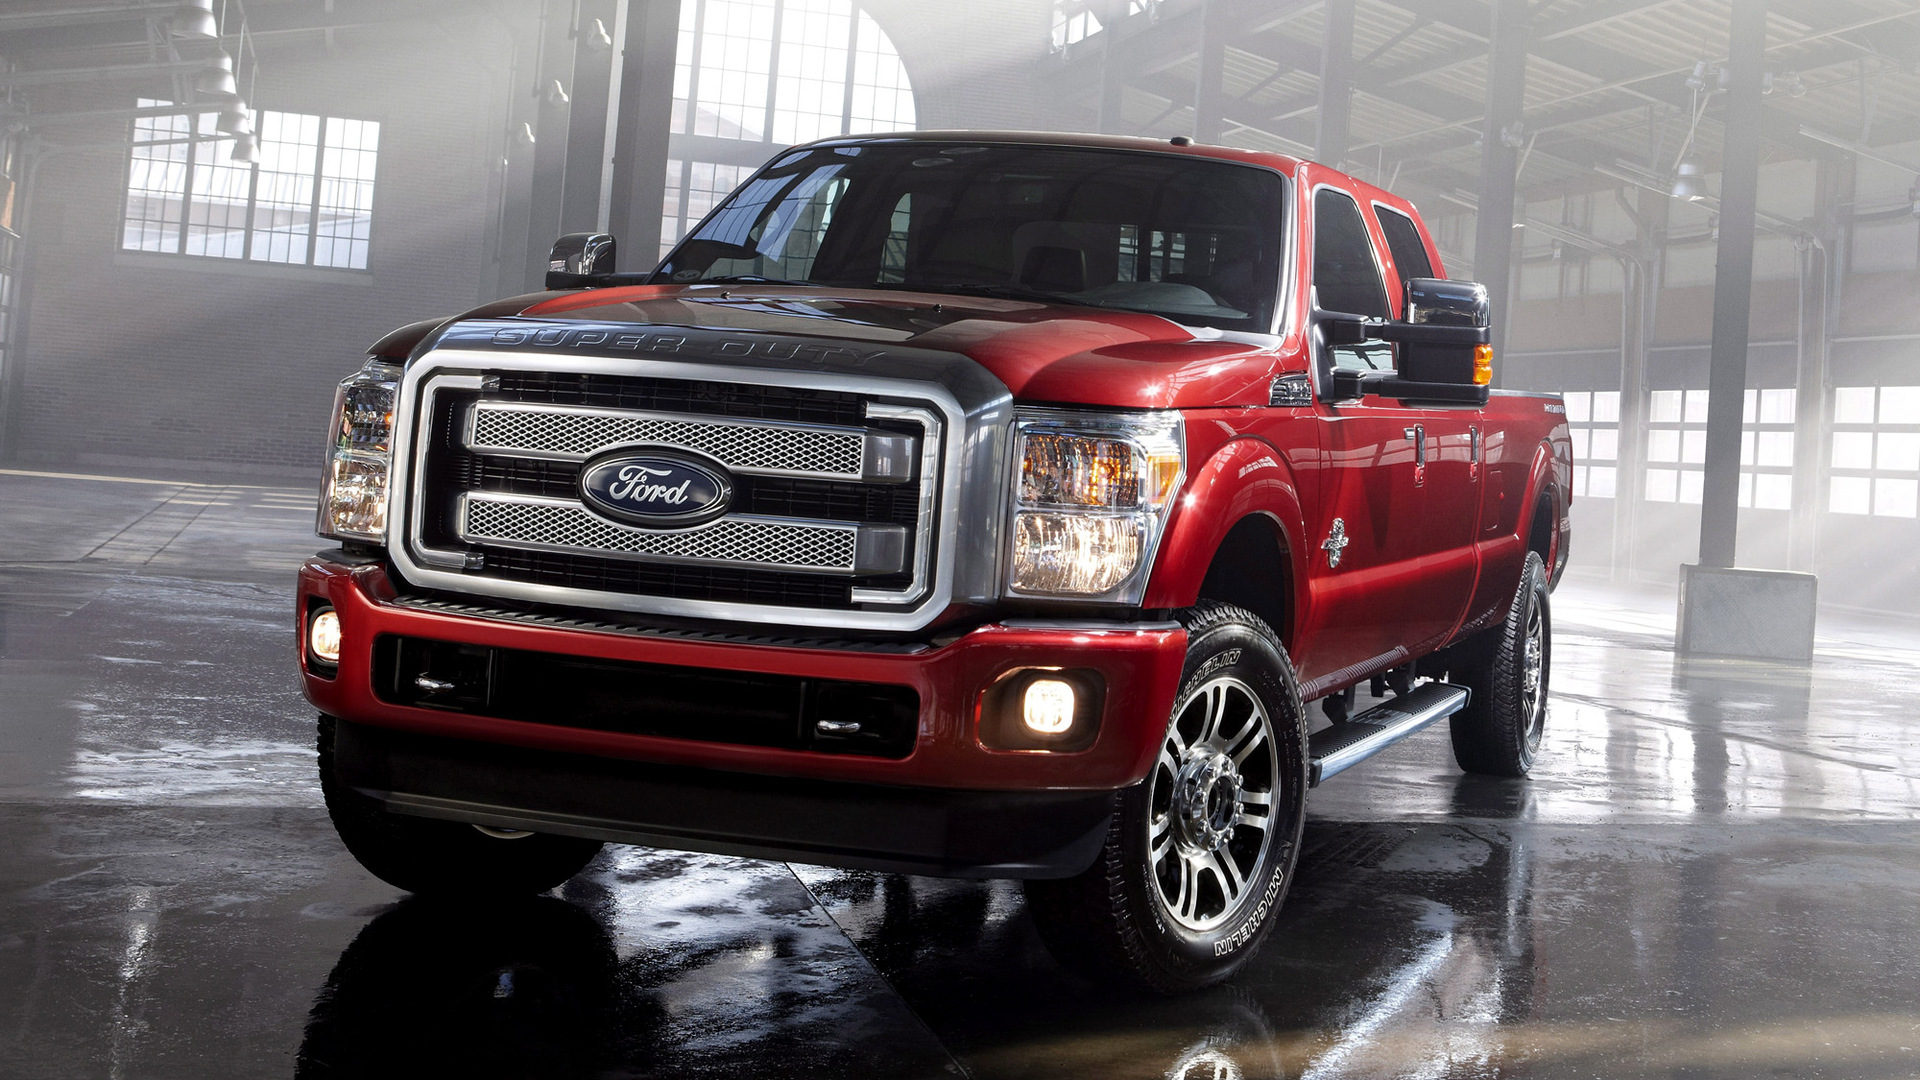 ford duty super 250 platinum series hd cab 350 crew wallpapers sales three cars truck prices grille front recall years